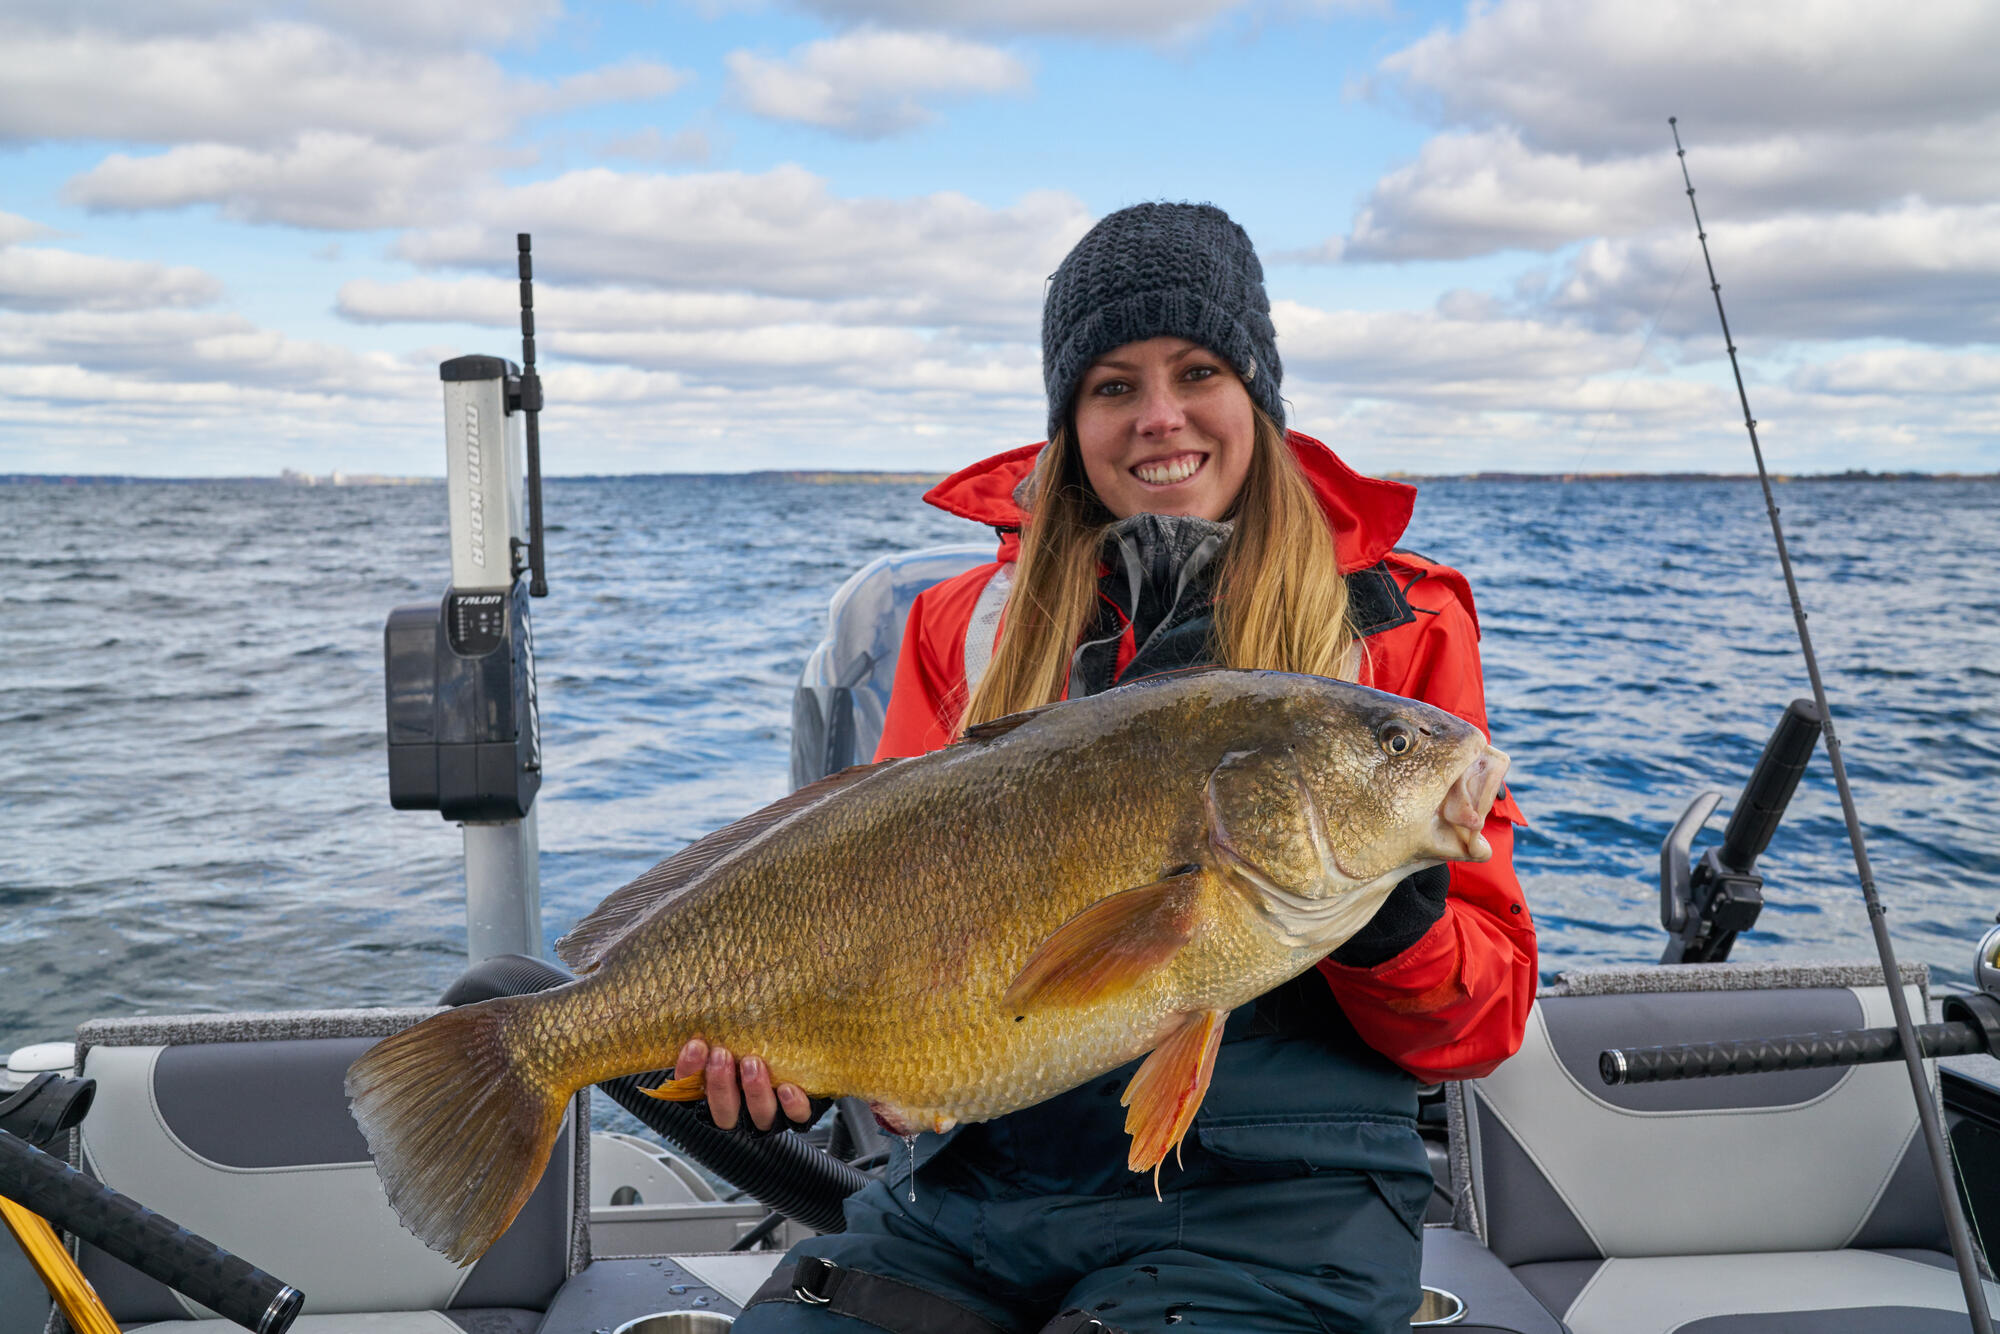 Delighted For Sheepshead On Bay Of Quinte Southern Ontario